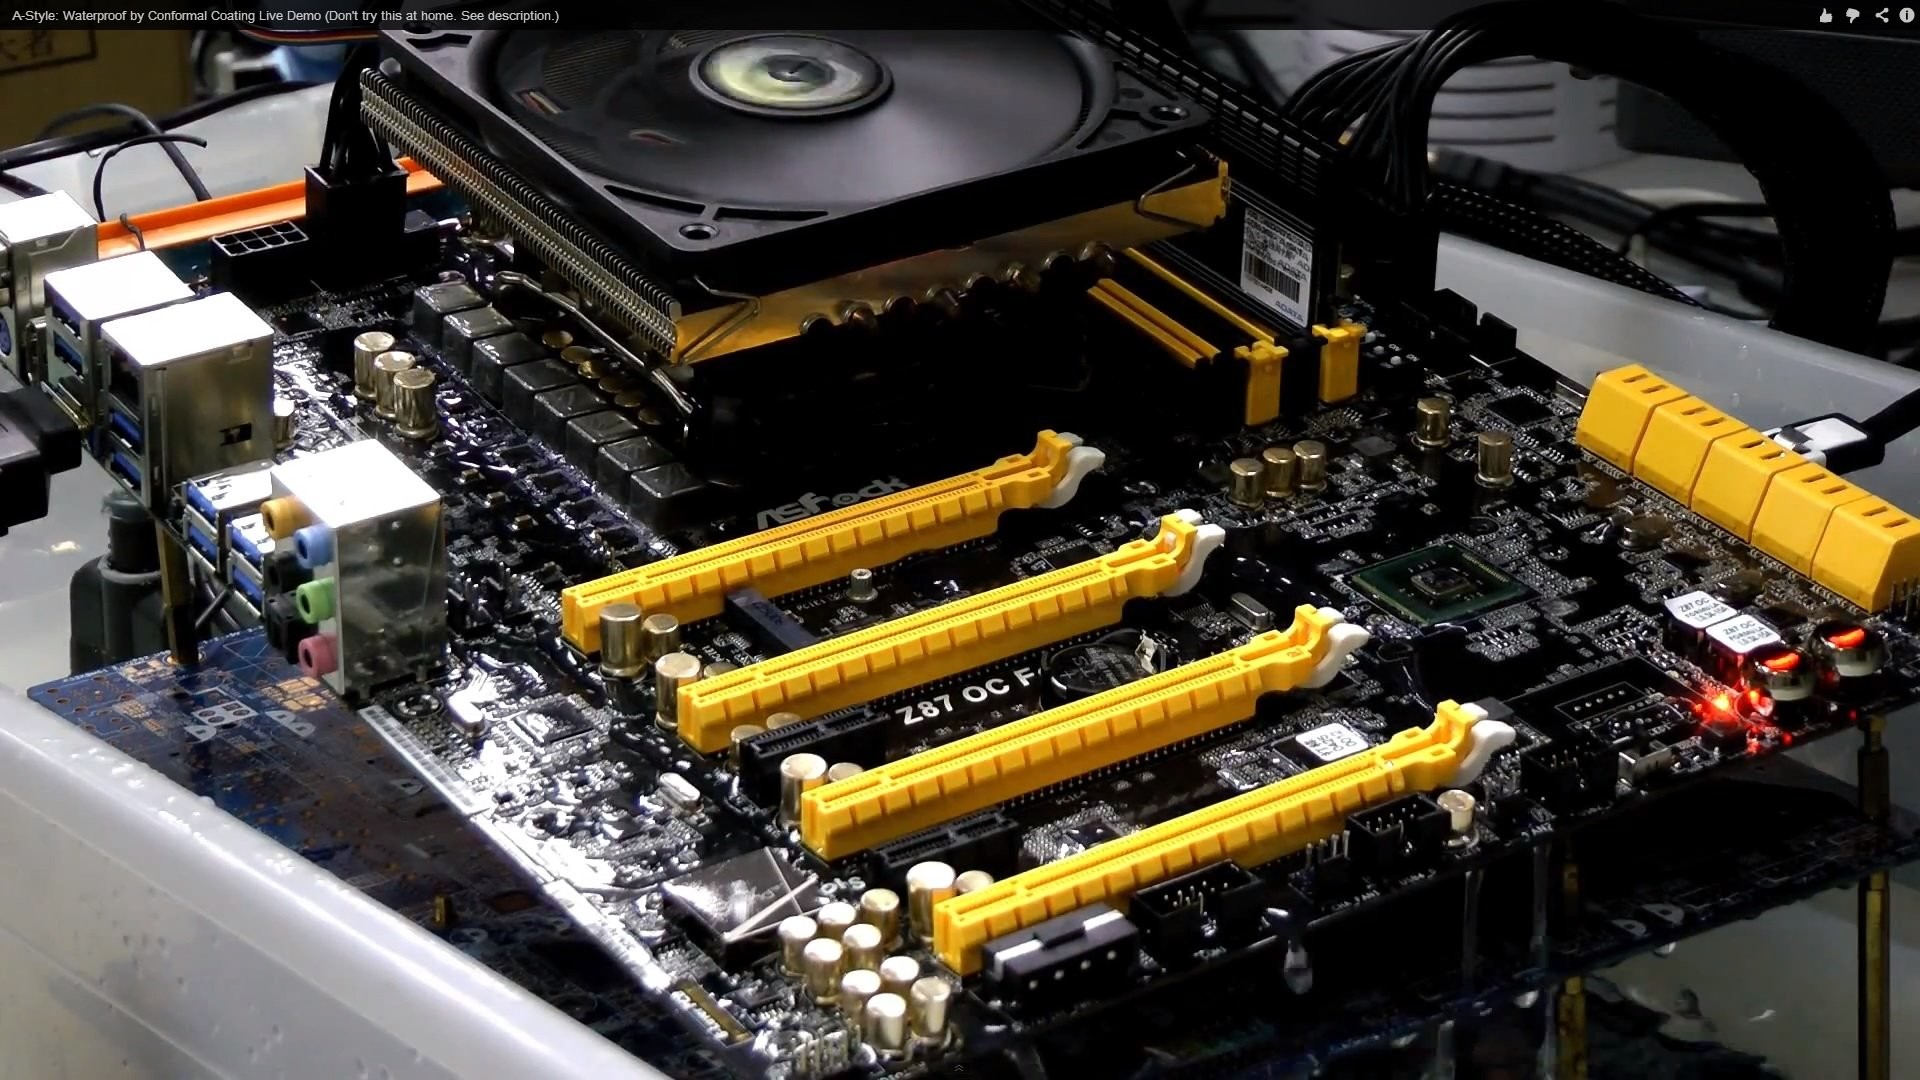 motherboard asrock wallpapers gaming computer asus desktop technology background 1080 videogame sabertooth x58 1920 backgrounds android px motherboards wallpapersafari wallpaperaccess